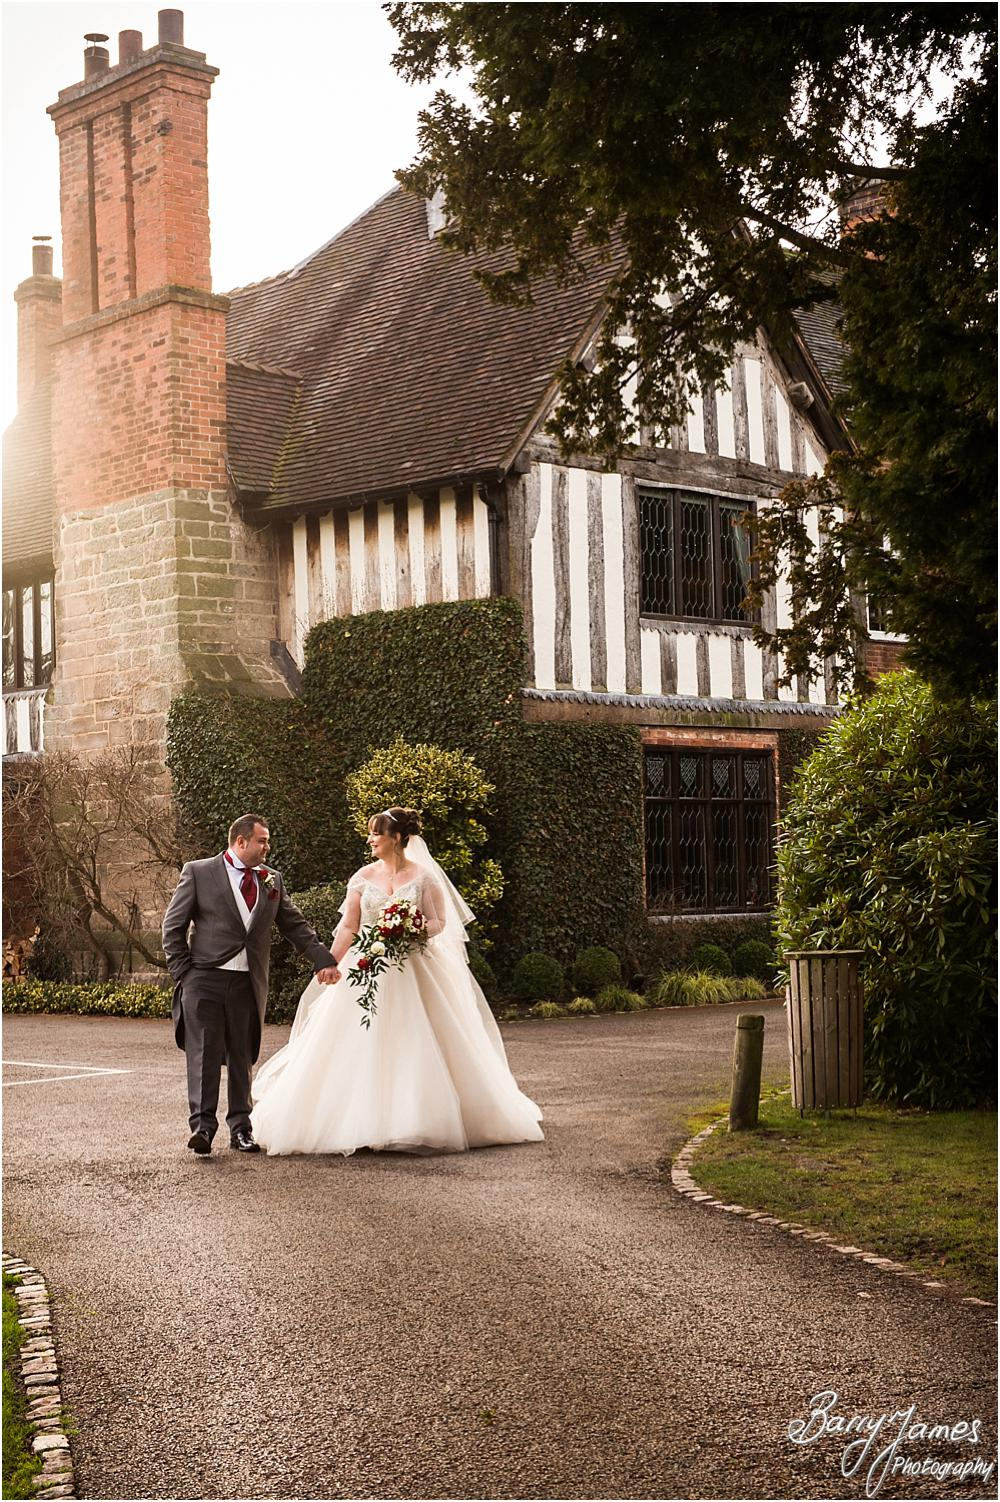 A look at the highlights of 2016 with West Midlands Wedding Photographers Barry James